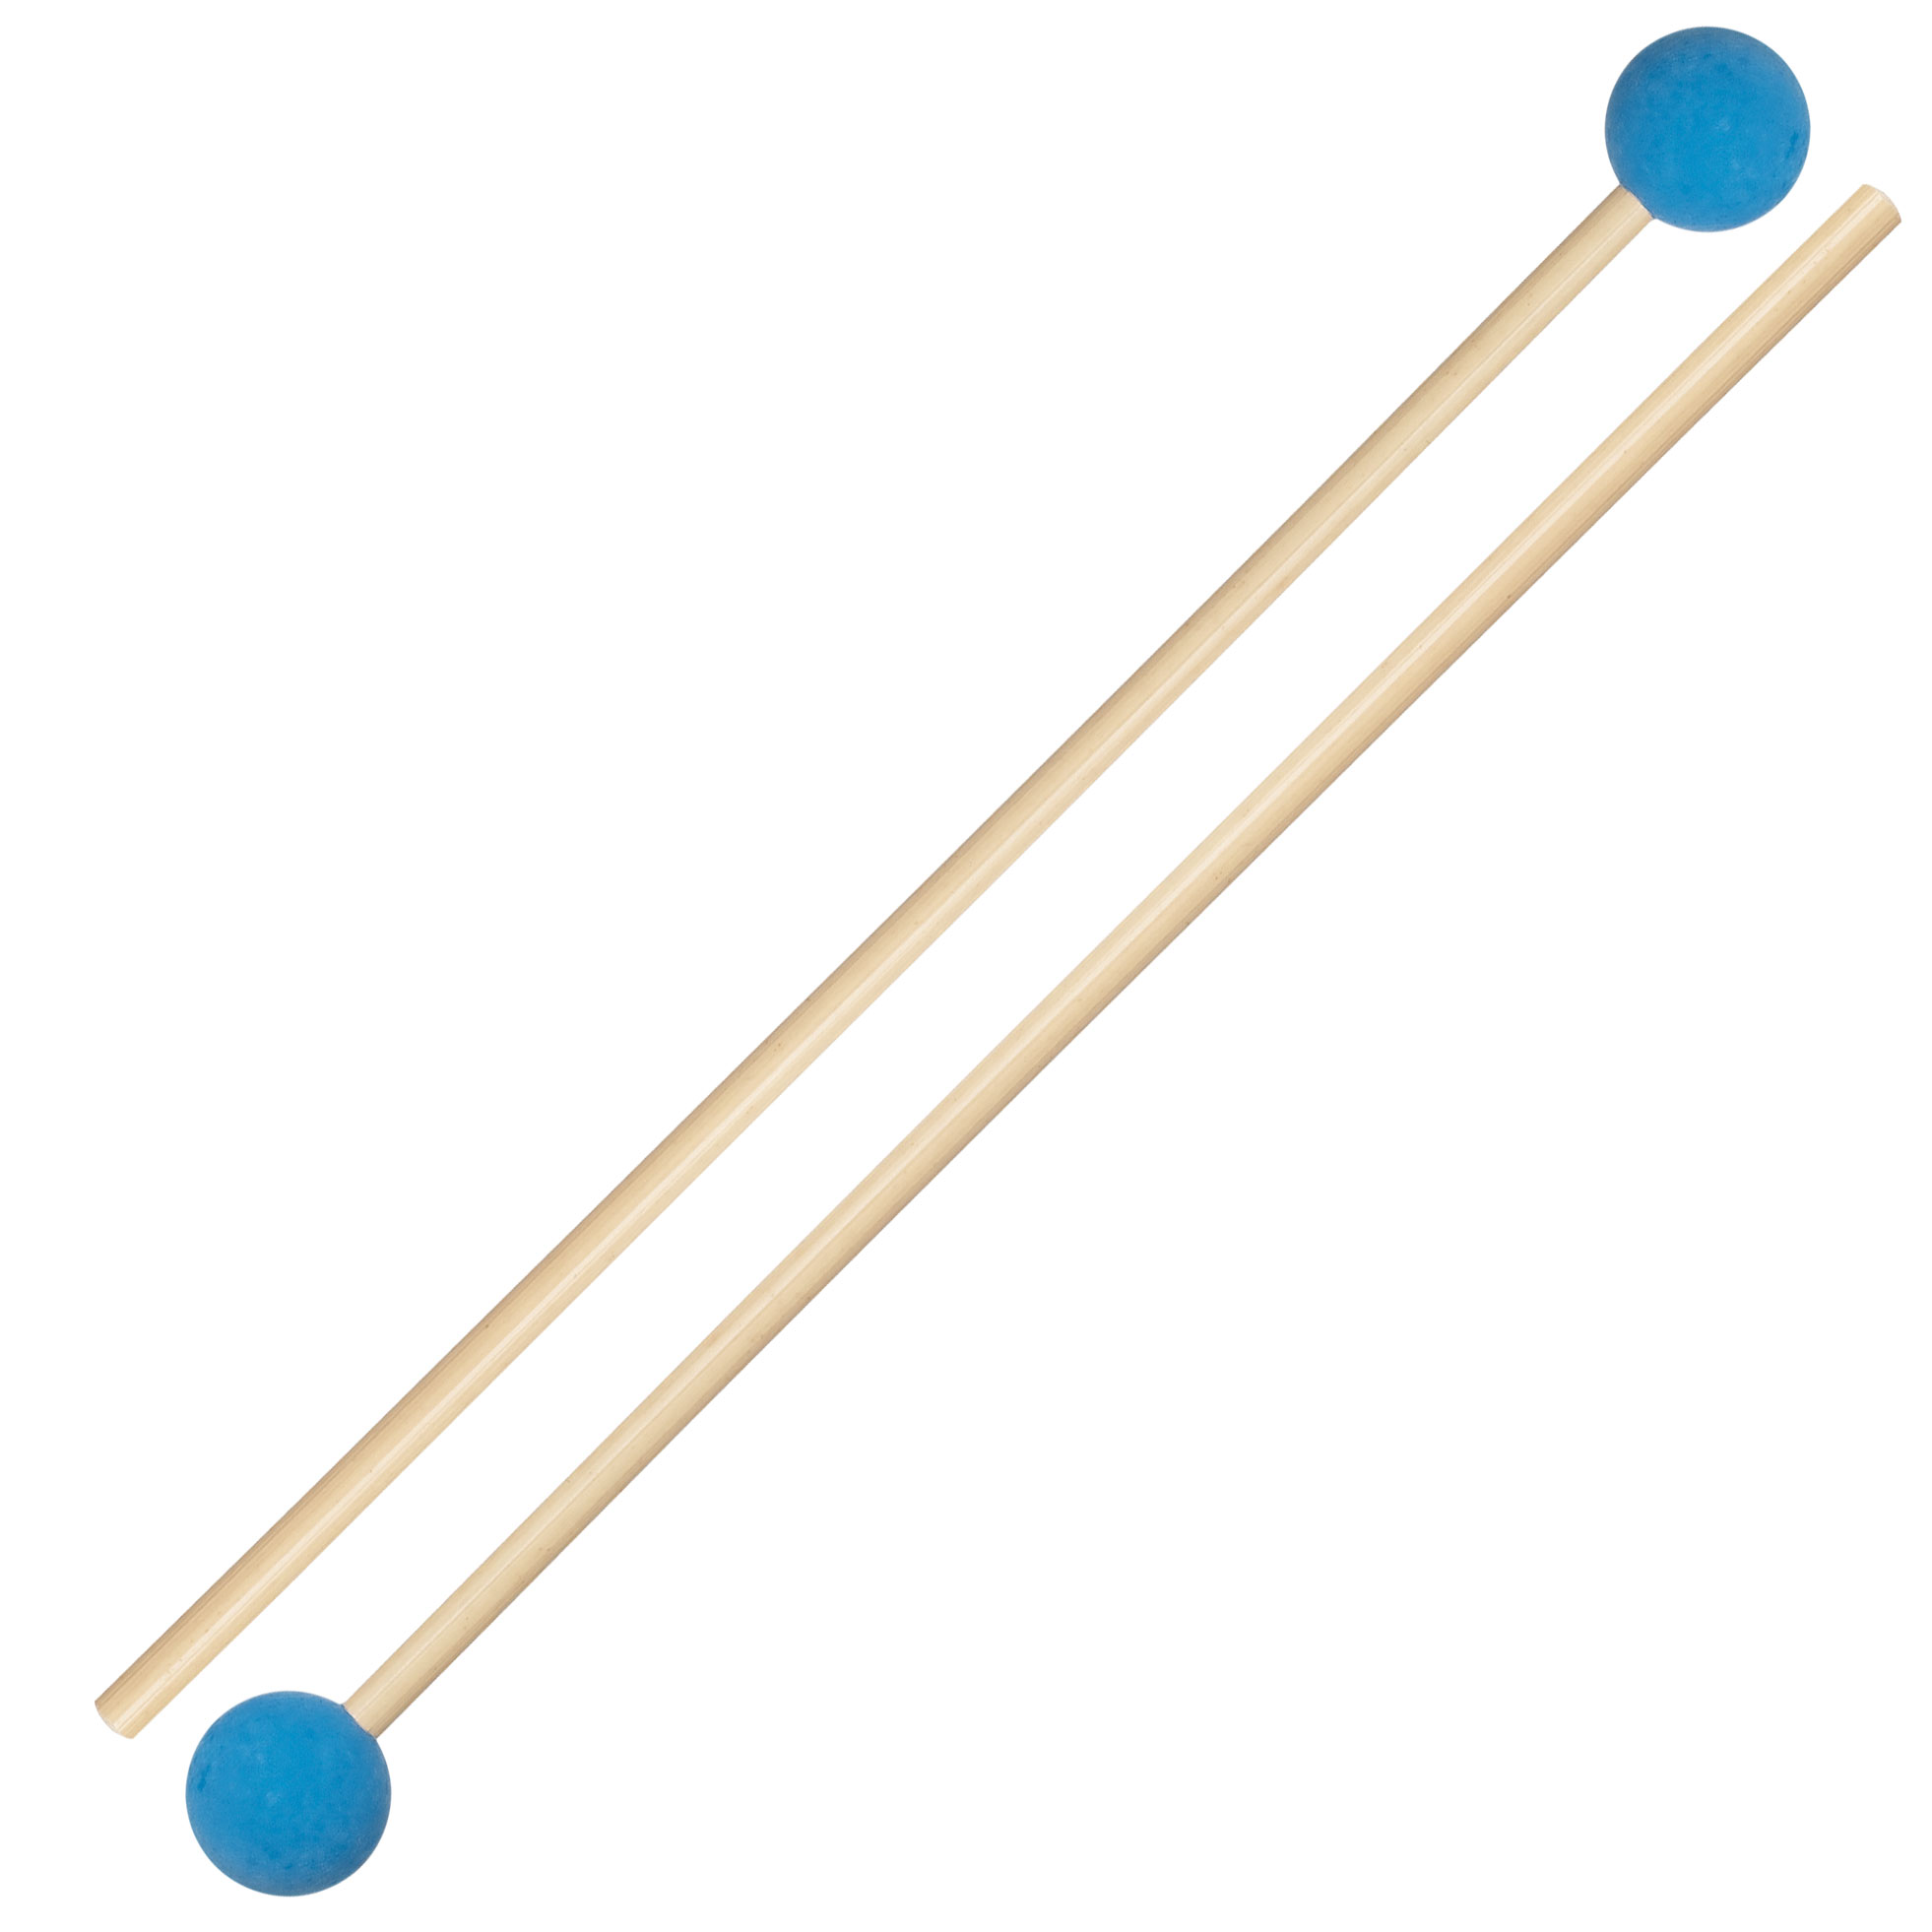 Vic firth orchestral series. Xylophone clipart stick